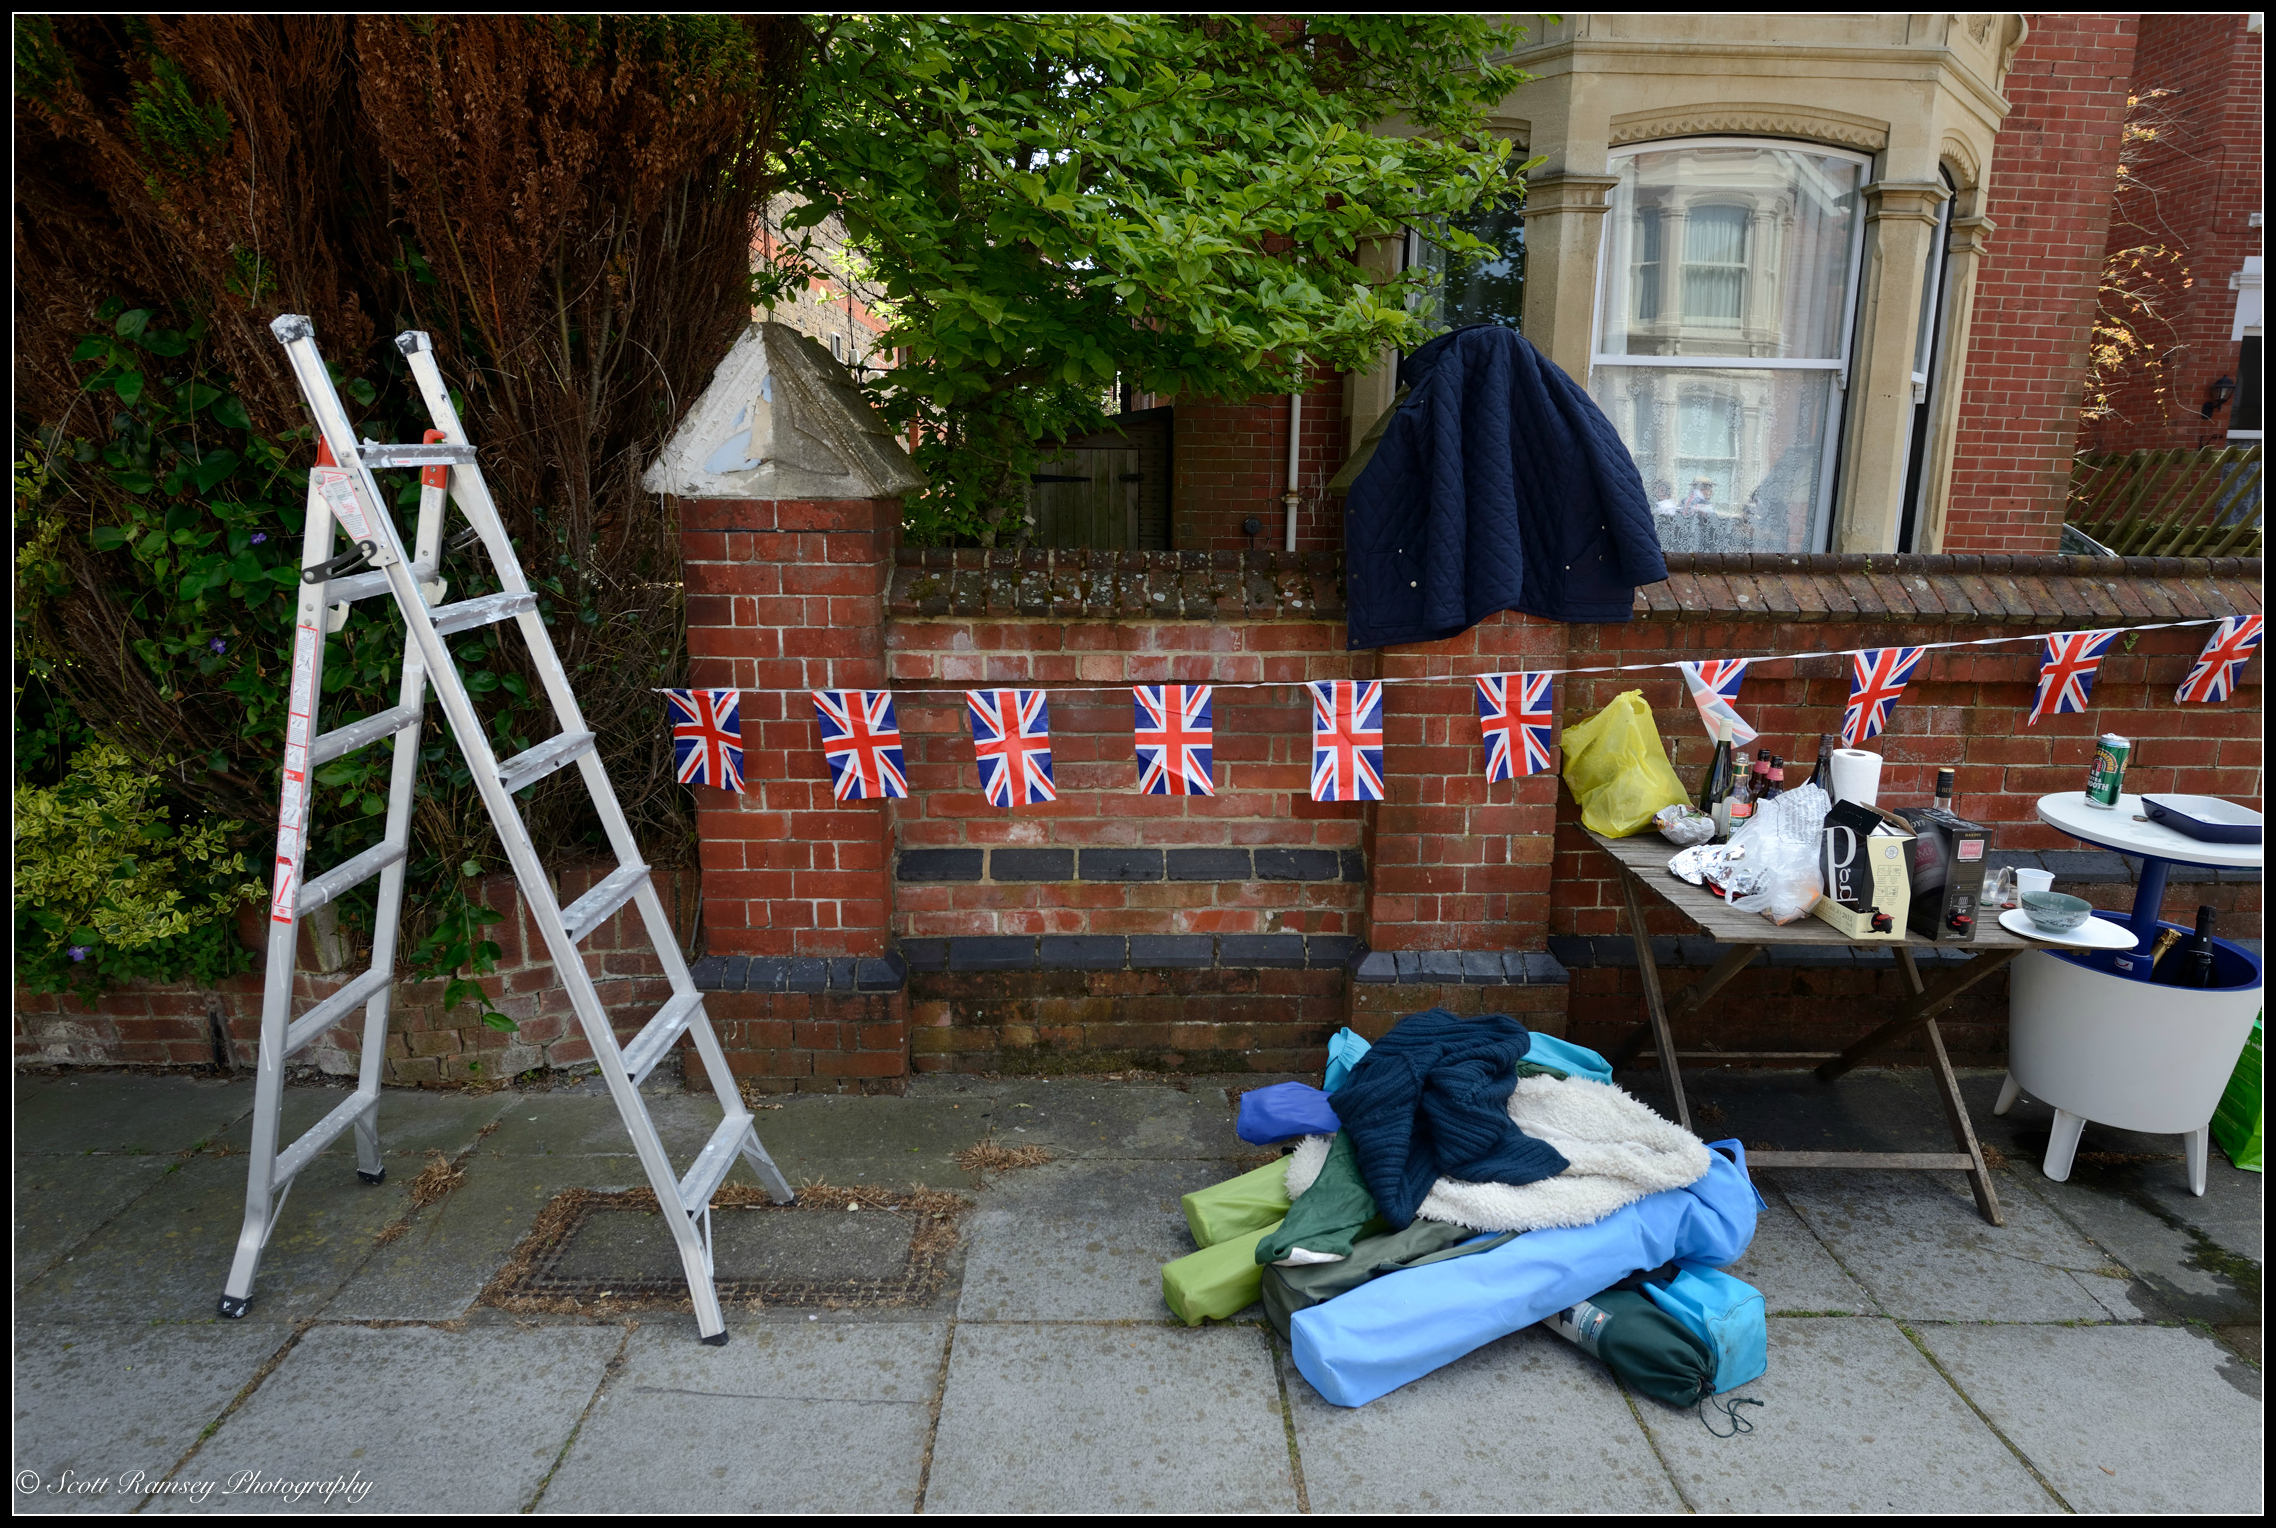 A step ladder, flags, table and chairs outside a housein  Nettlecombe Avenue in Southsea, Portsmouth during a VE Day70th  anniversarystreet party. © Scott Ramsey Photography.